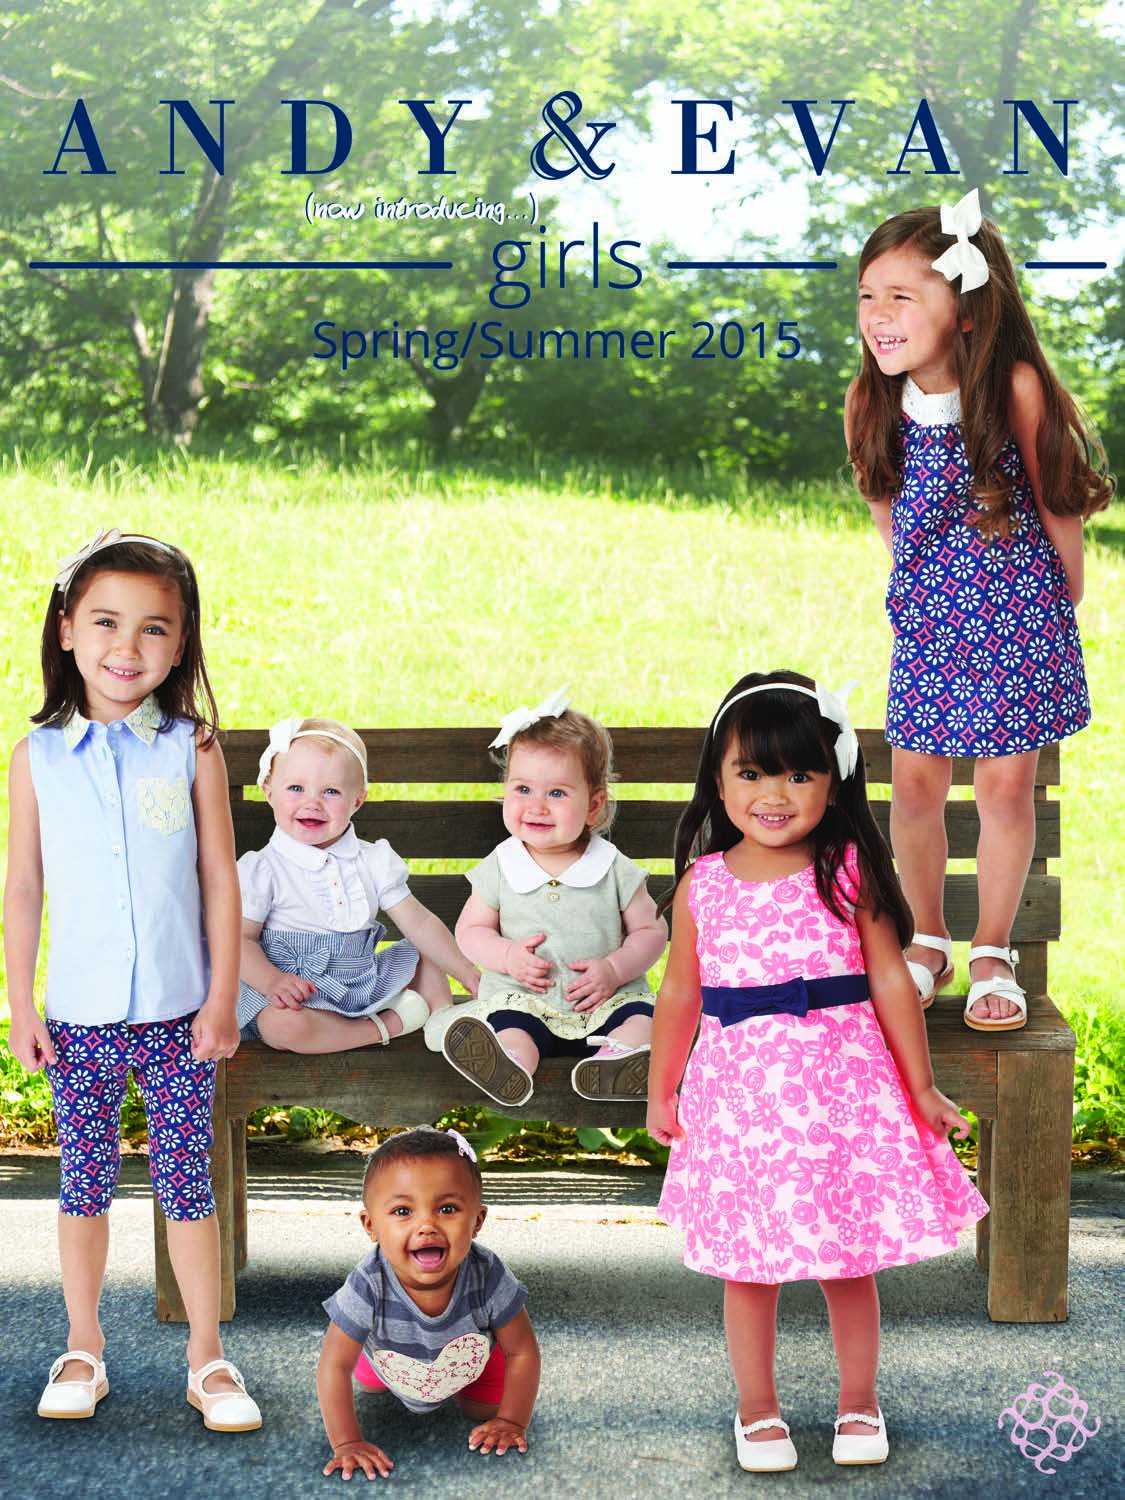 Andy & Evan GIRLS Spring Summer 2015 | AFancyGirlMust.com